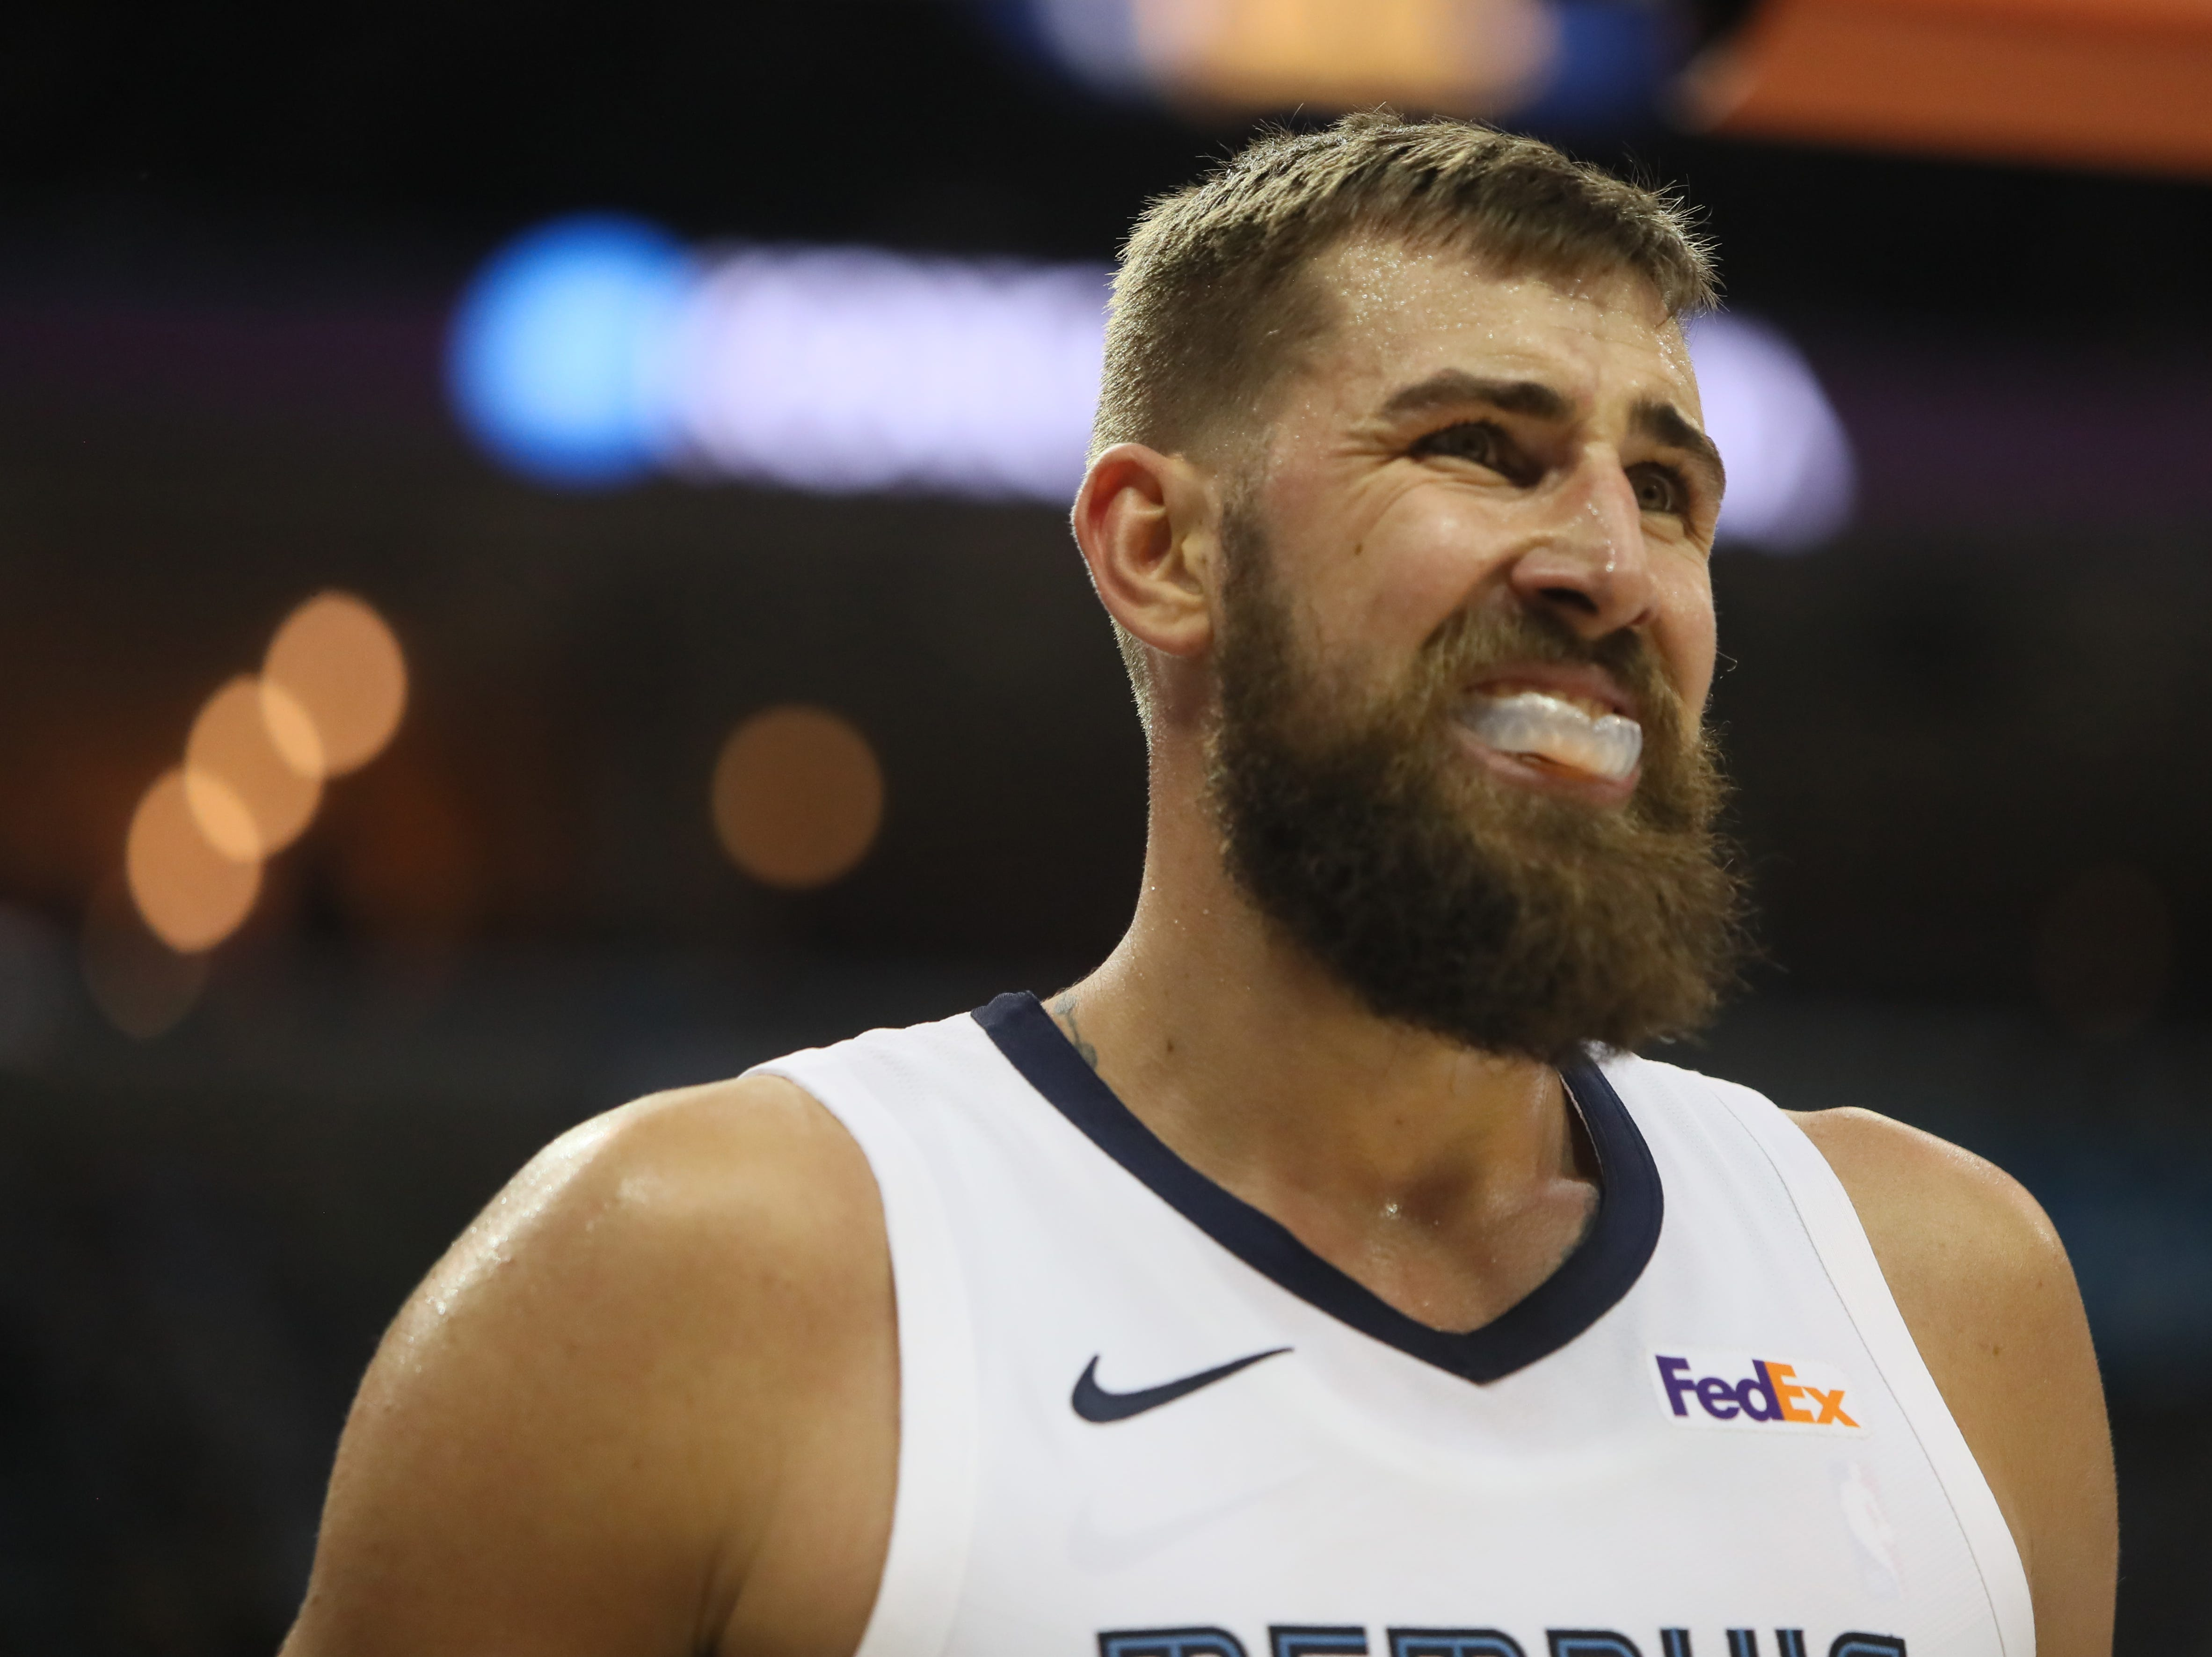 Memphis Grizzlies center Jonas Valanciunas grimaces after not getting a foul call against the Utah Jazz during their game at the FedExForum on Friday, March 8, 2019.